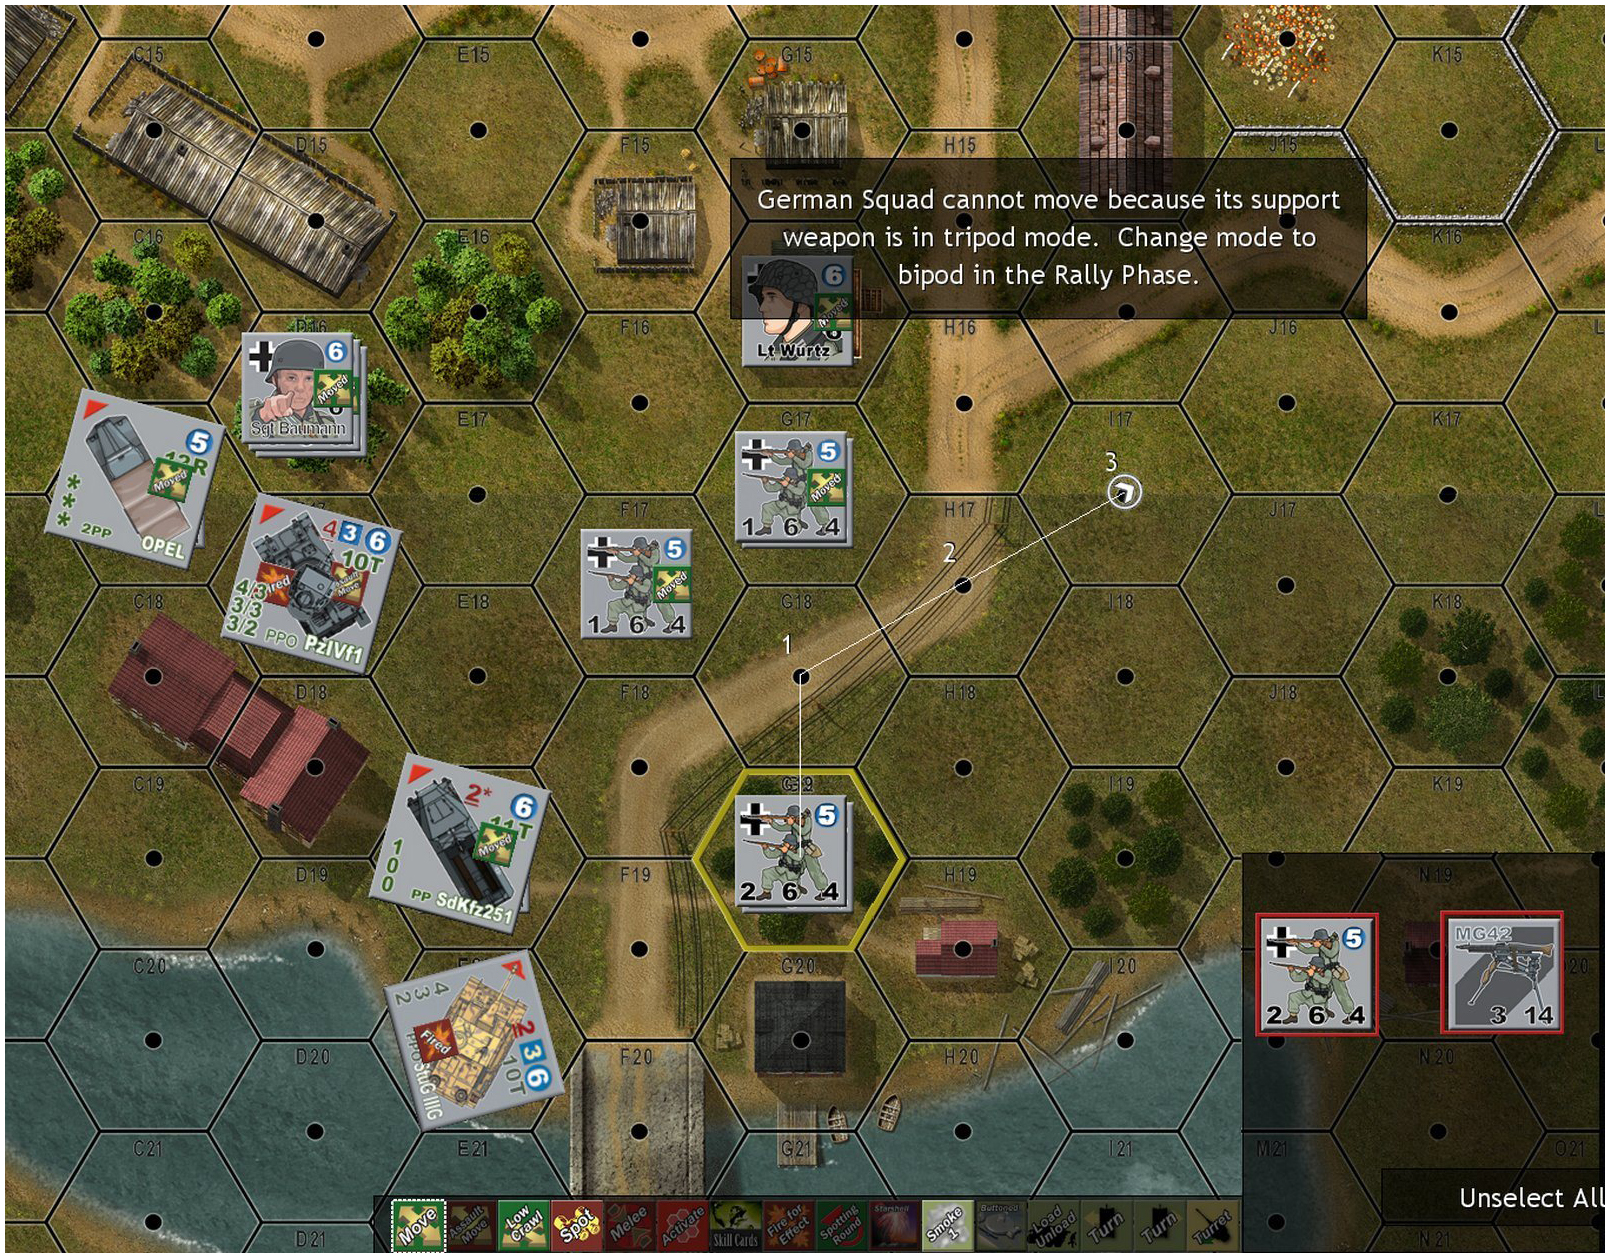 The German player must make tactical decisions as he assaults over a bridge